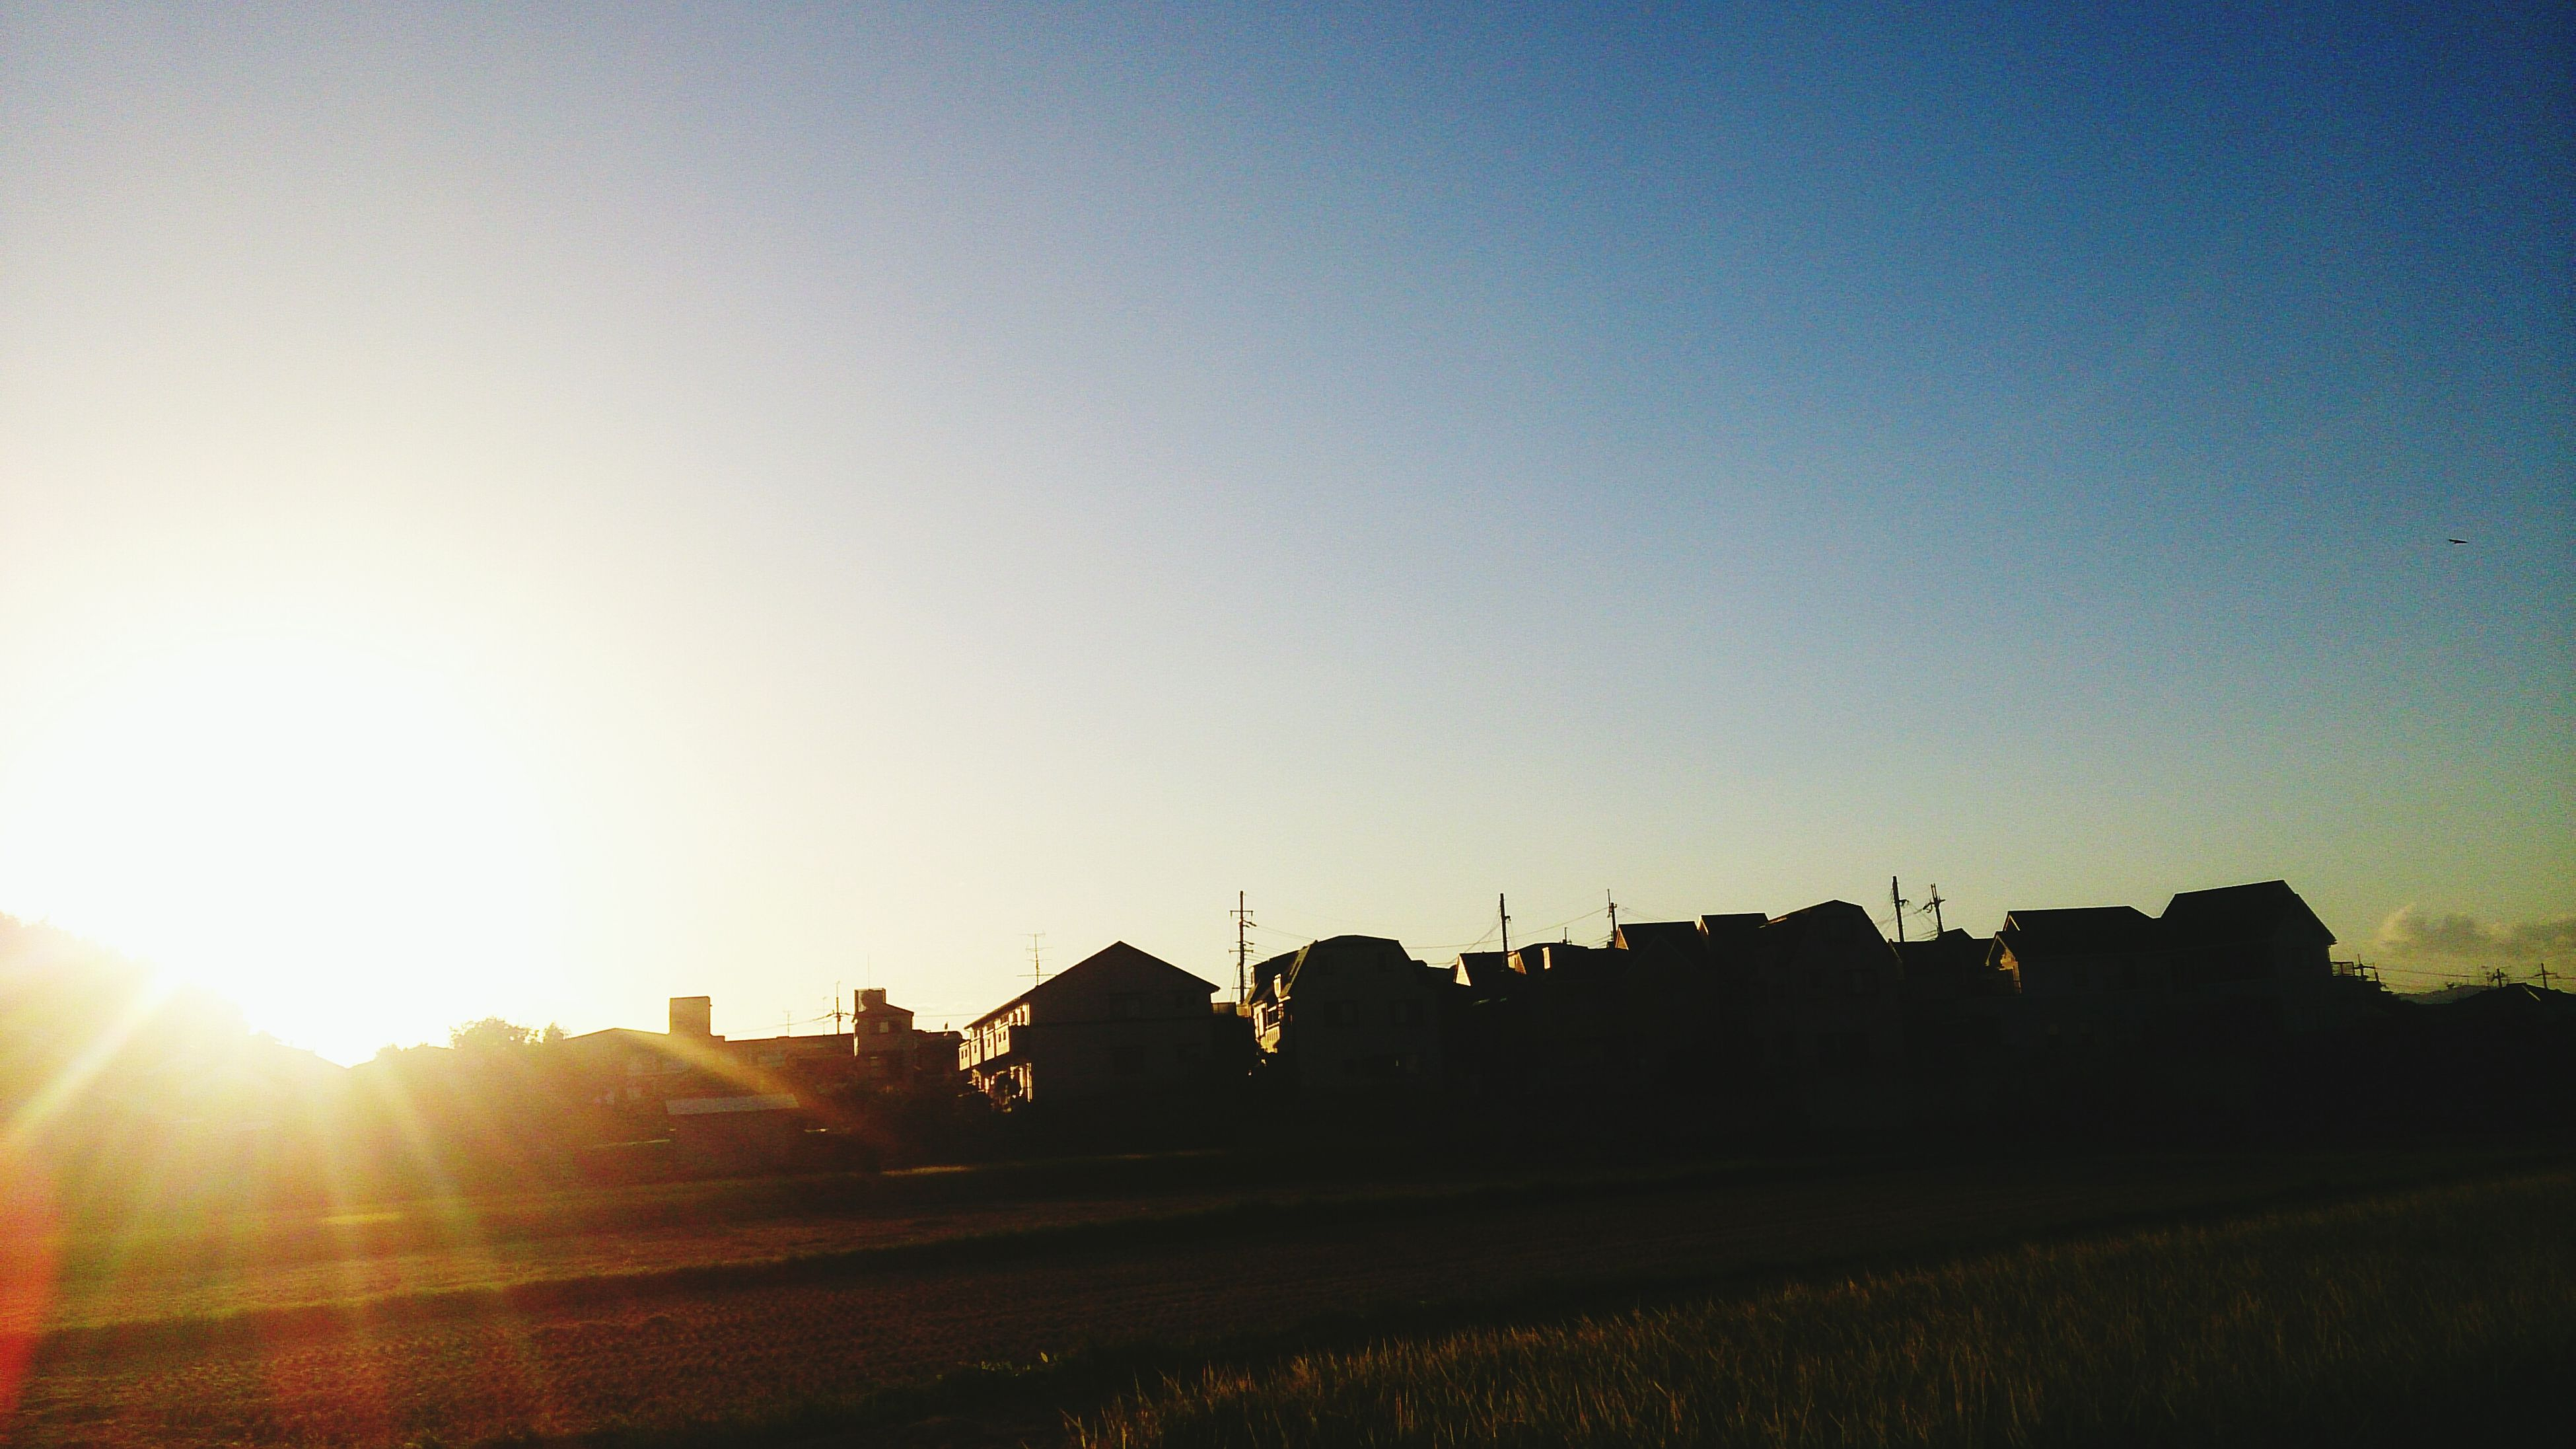 building exterior, architecture, built structure, sun, clear sky, sunset, sunlight, copy space, sunbeam, silhouette, lens flare, house, residential structure, sky, outdoors, residential building, building, nature, bright, city